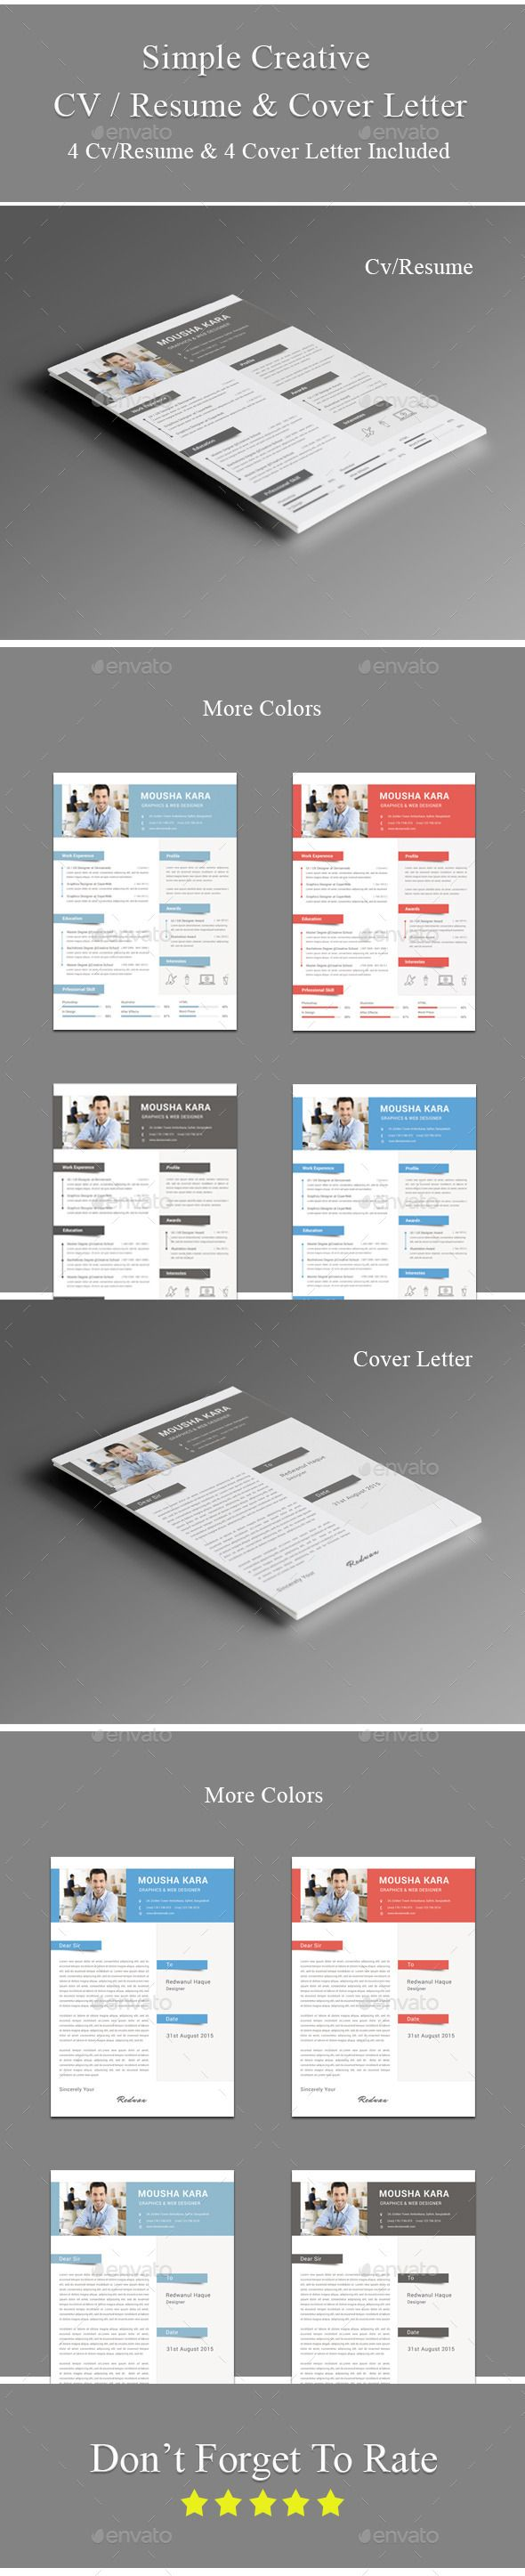 Simple Creative CV / Resume & Cover Letter